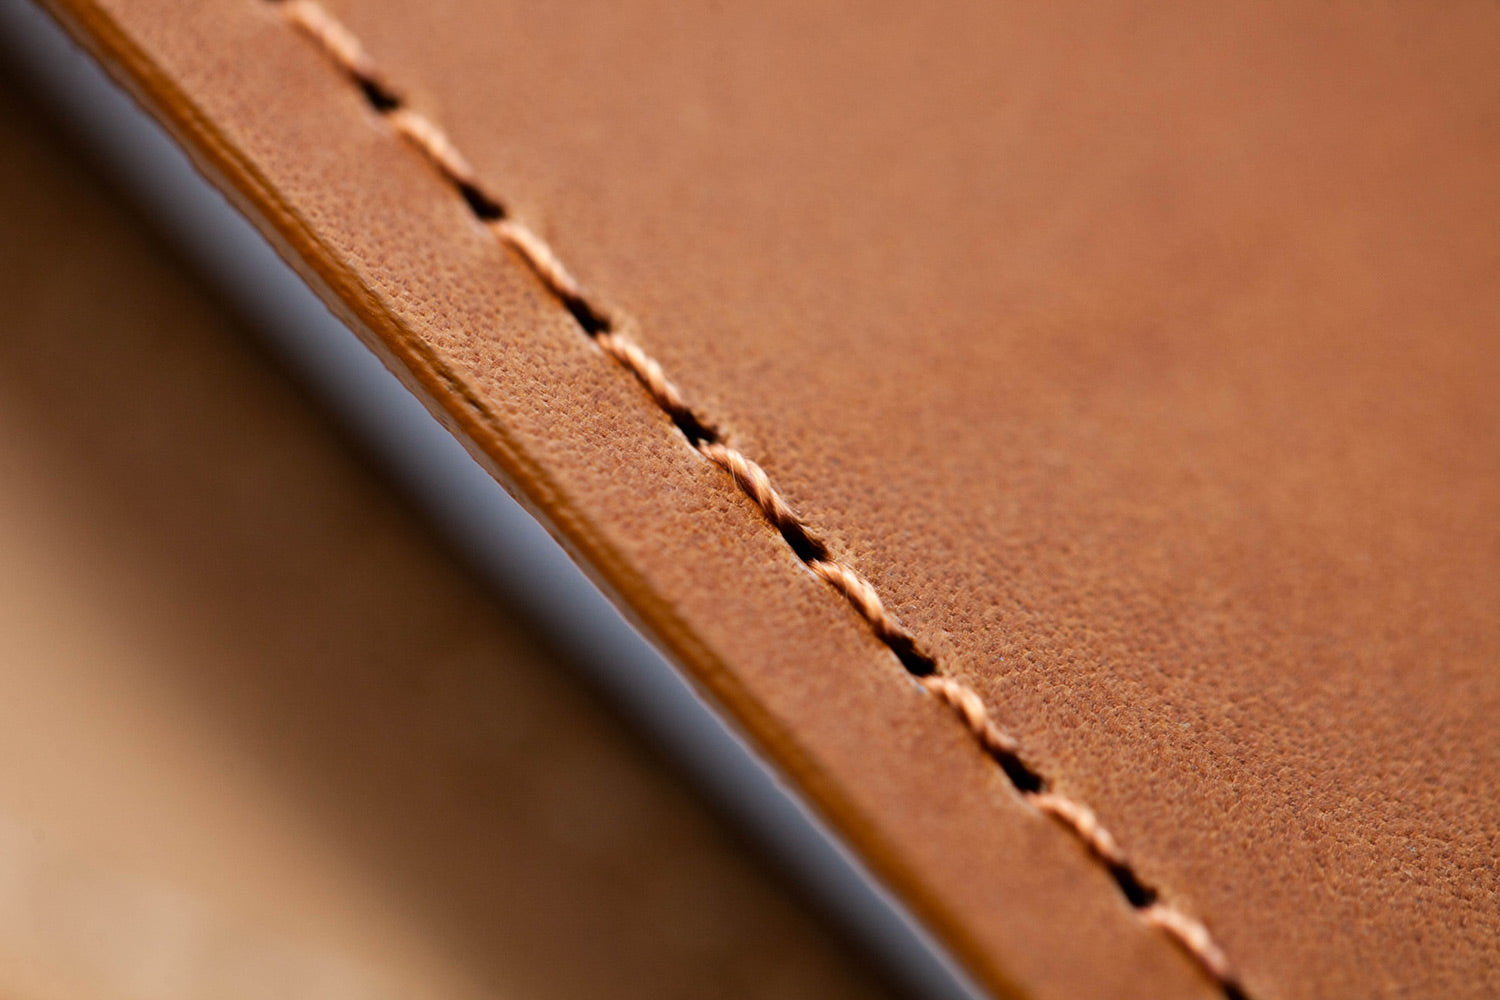 Detail shot of leather stitching